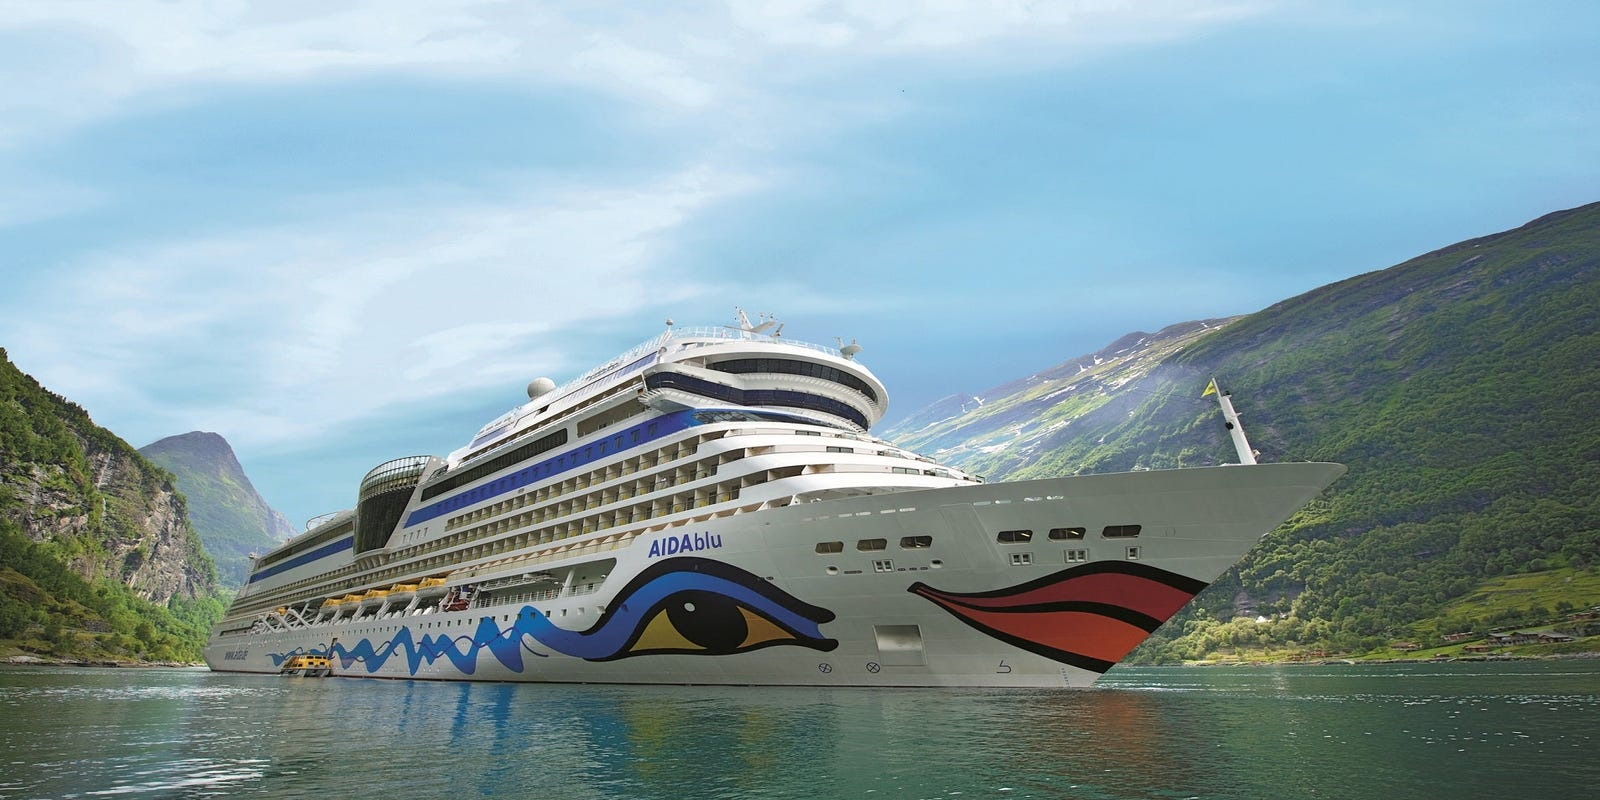 'Violated protocols': Cruiser on Carnival Corp. ship blocked from boarding over COVID-19 rules